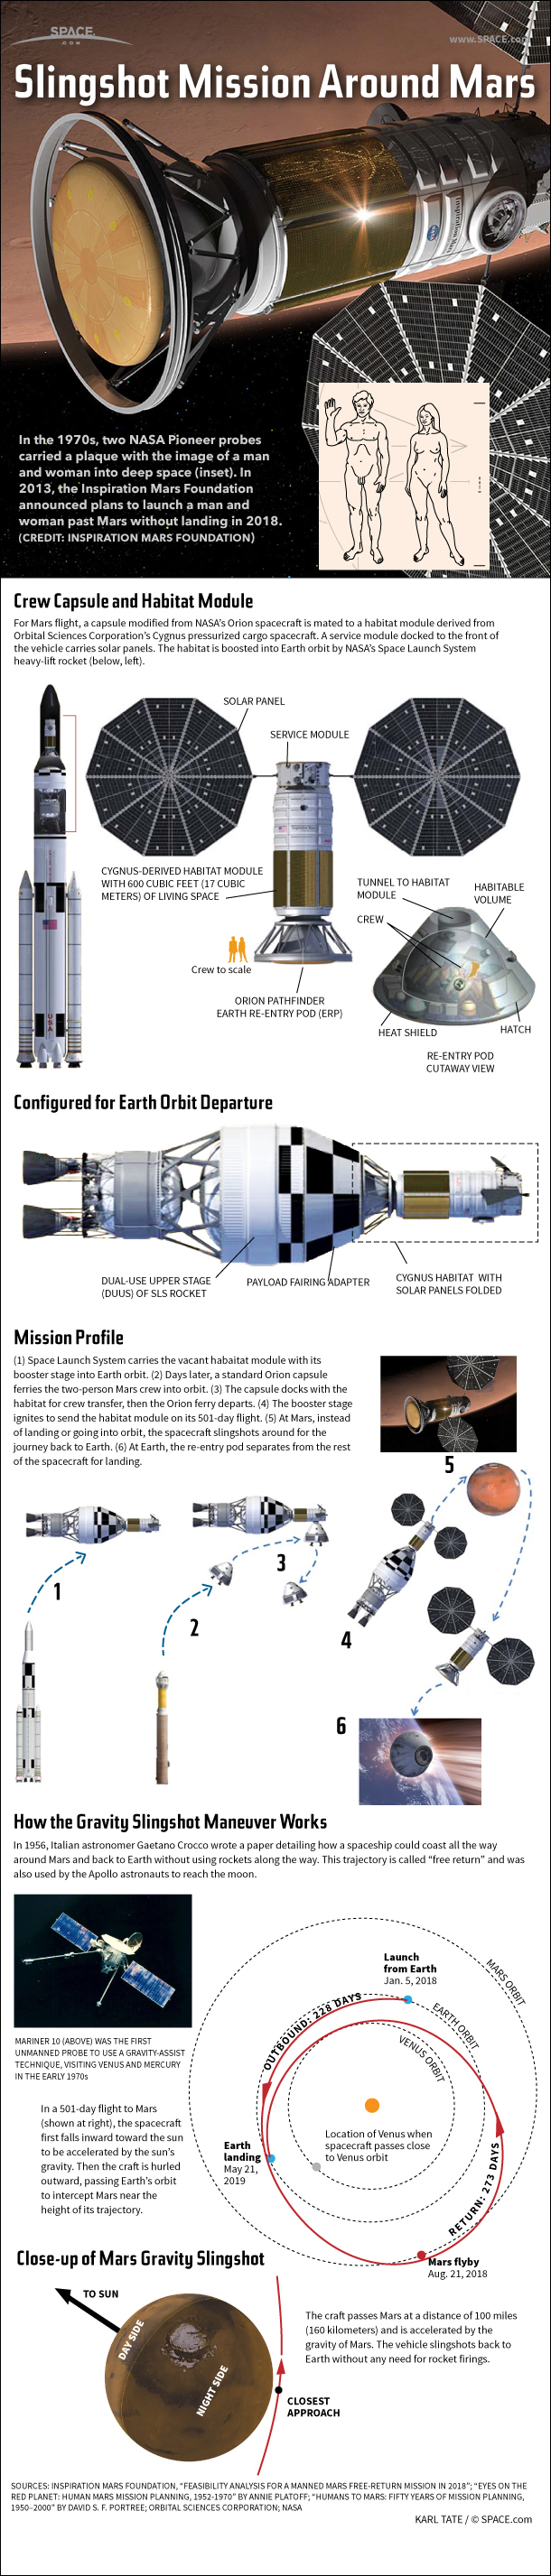 Dennis Tito's 2021 Human Mars Flyby Mission Explained (Infographic)